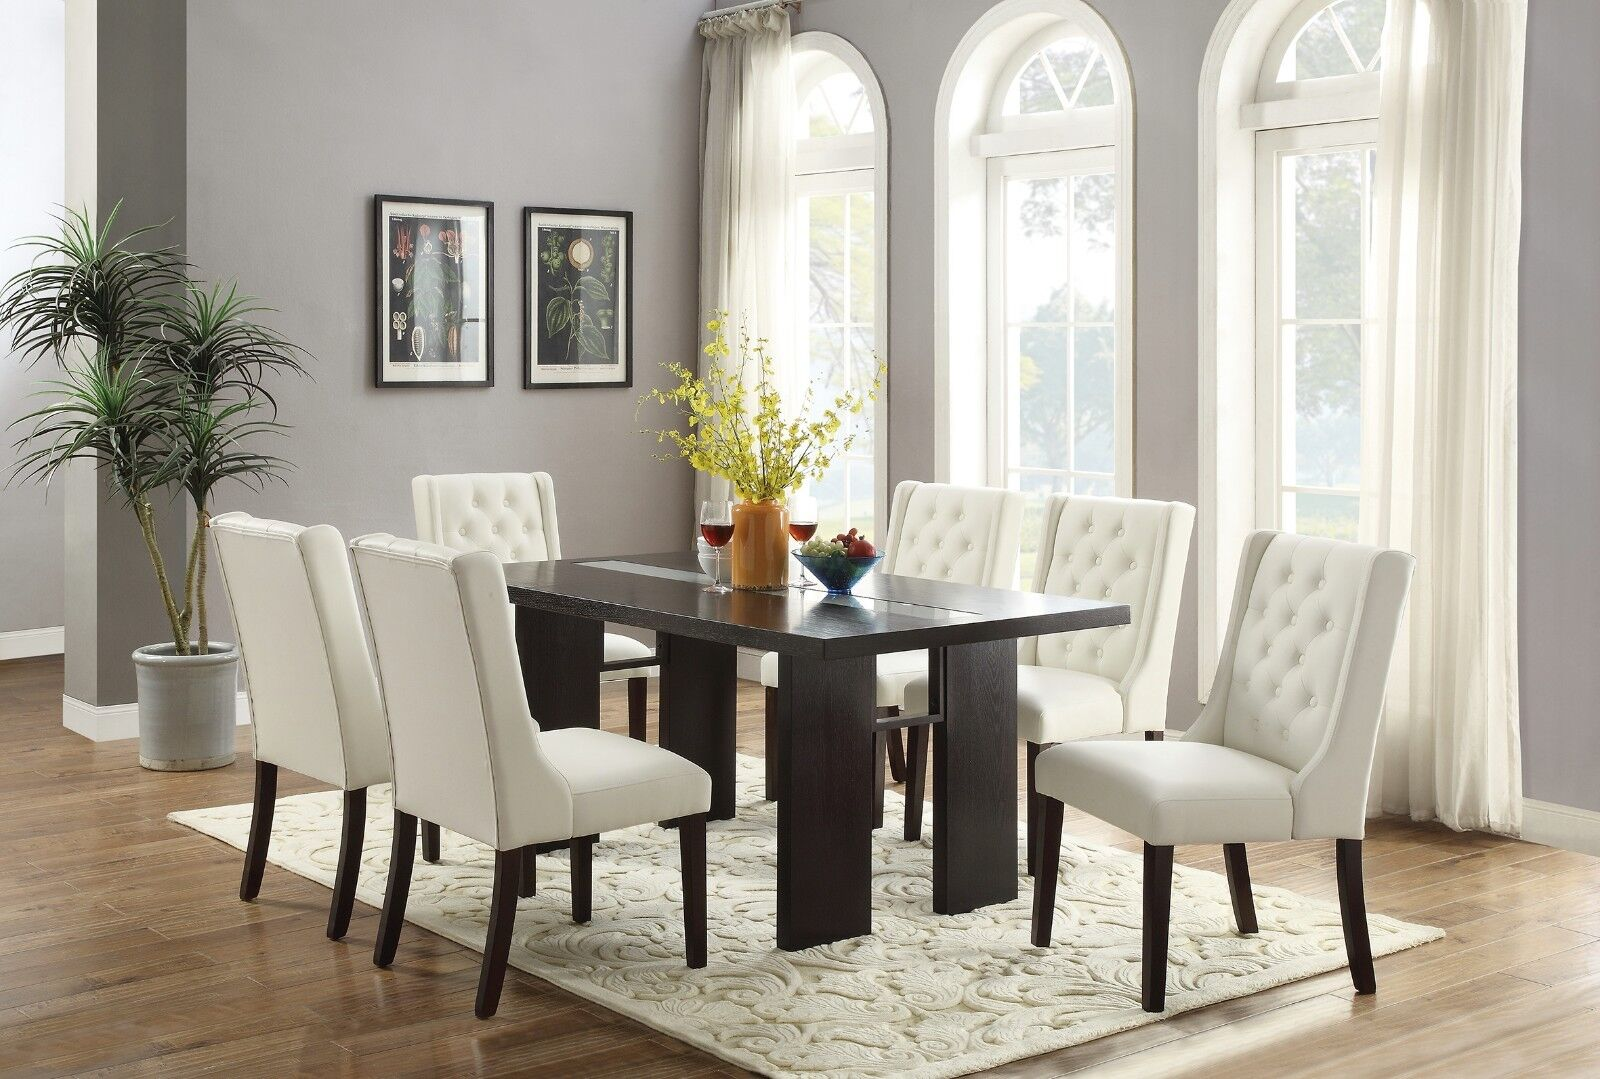 Picture of: Modern Oval Shaped Dining Table W 6 Chairs Faux Leather Seat Back Dining Room For Sale Online Ebay